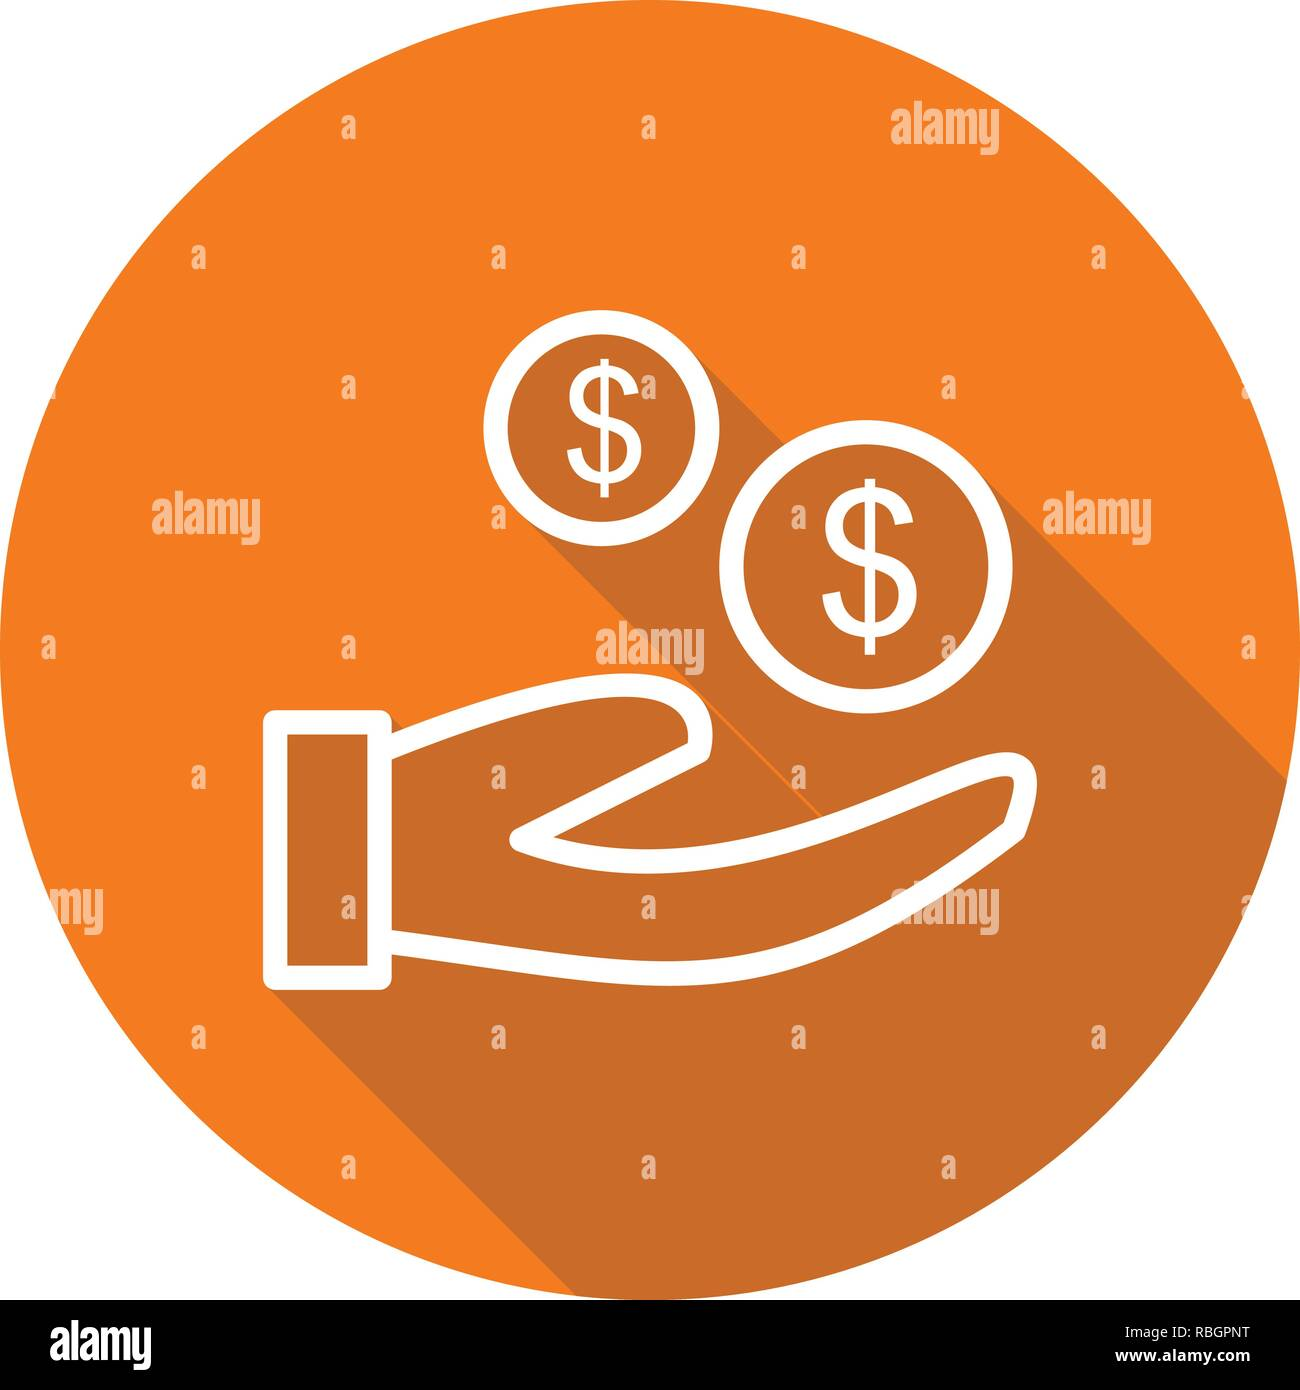 E-Commerce Icon For Personal And Commercial Use...Neat And Trendy Look - Stock Vector